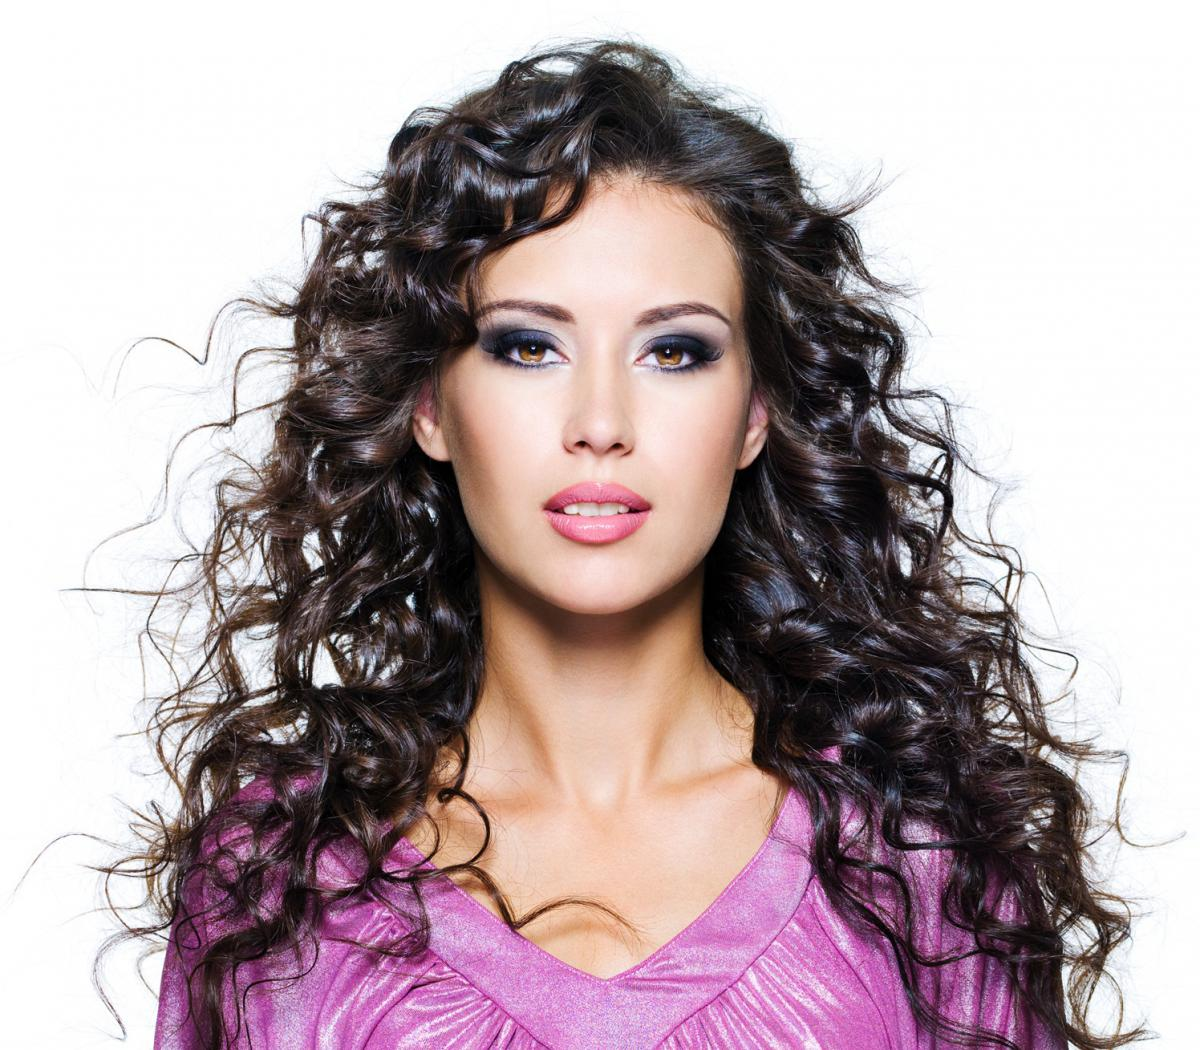 Curls hollywood ghd curls shineboots product reviews and enjoy curls Short brown wavy hairstyle